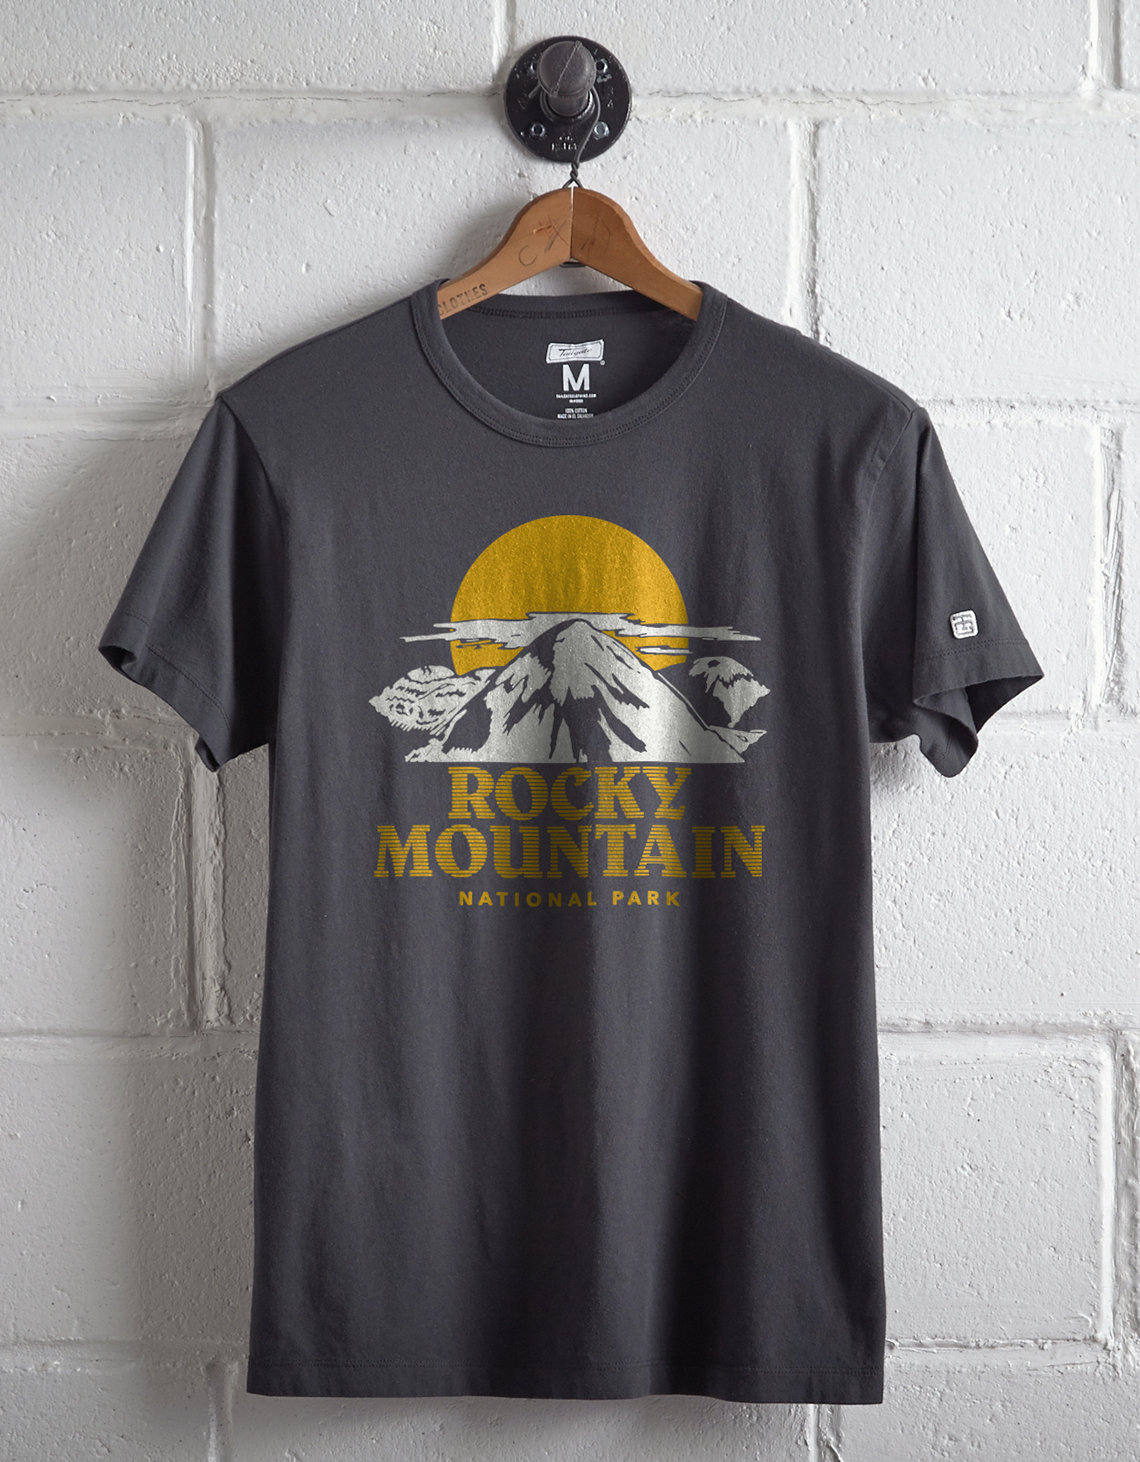 Tailgate Men's Rocky Mountain National Park T-Shirt. Placeholder image.  Product Image. NewOnline Only